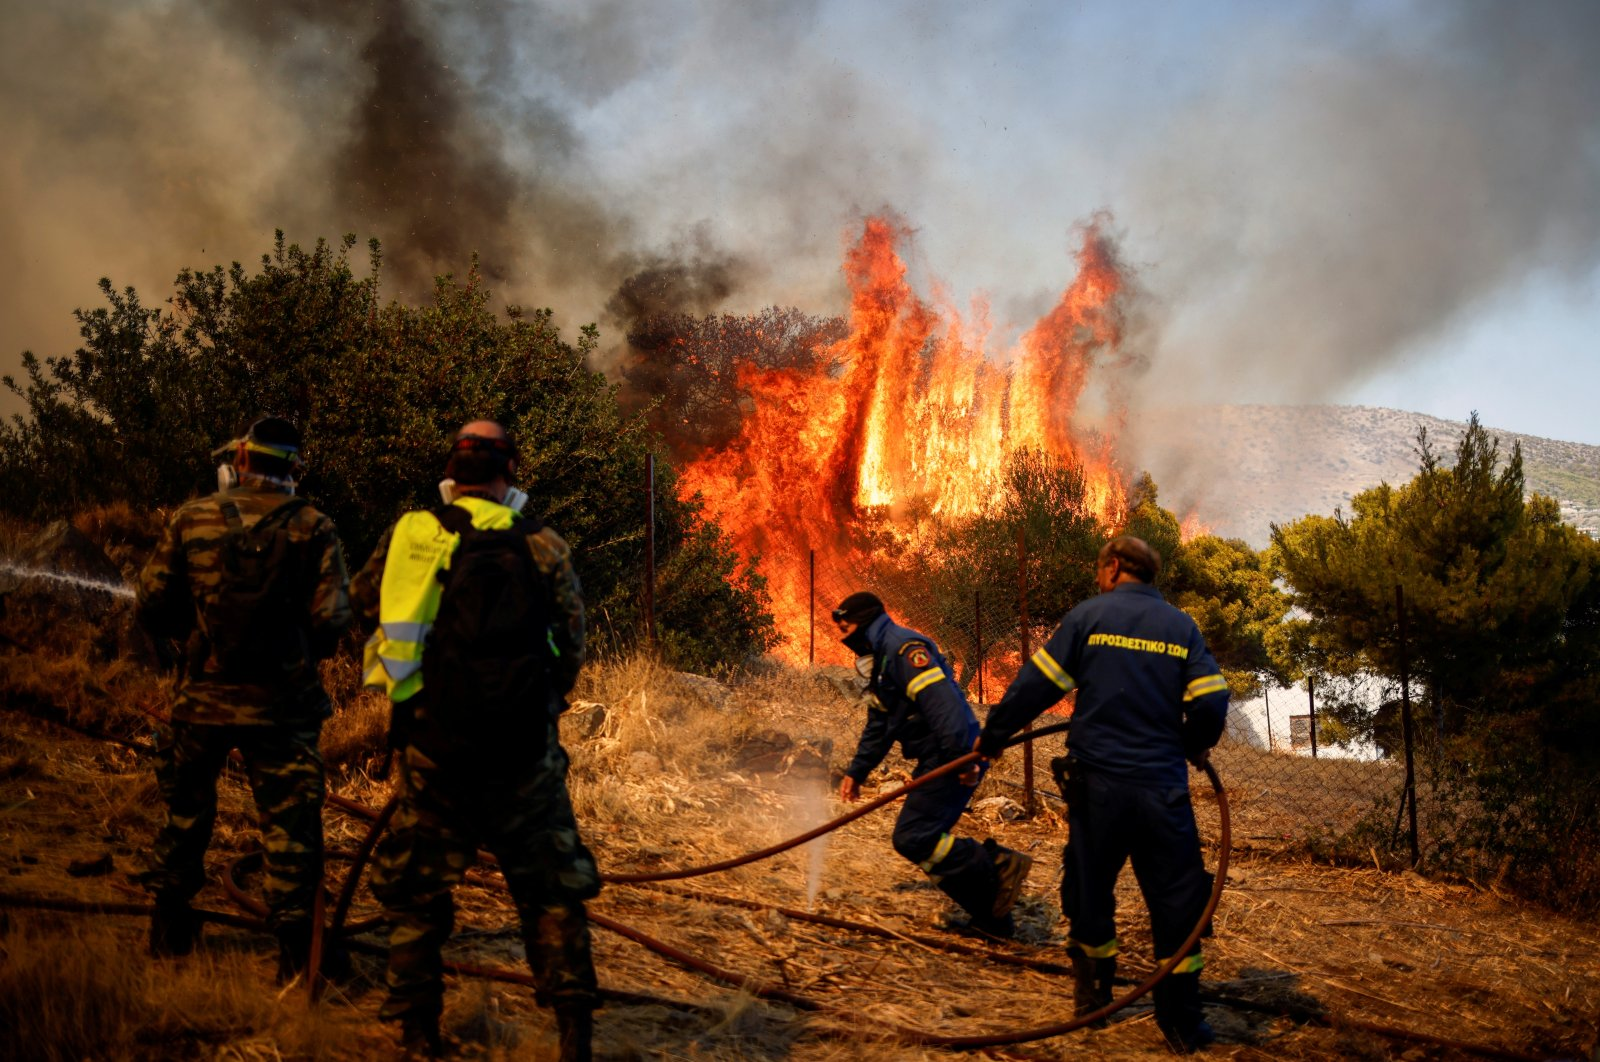 Firefighters and volunteers try to extinguish a wildfire burning in the village of Markati, near Athens, Greece, Aug. 16, 2021. (Reuters Photo)